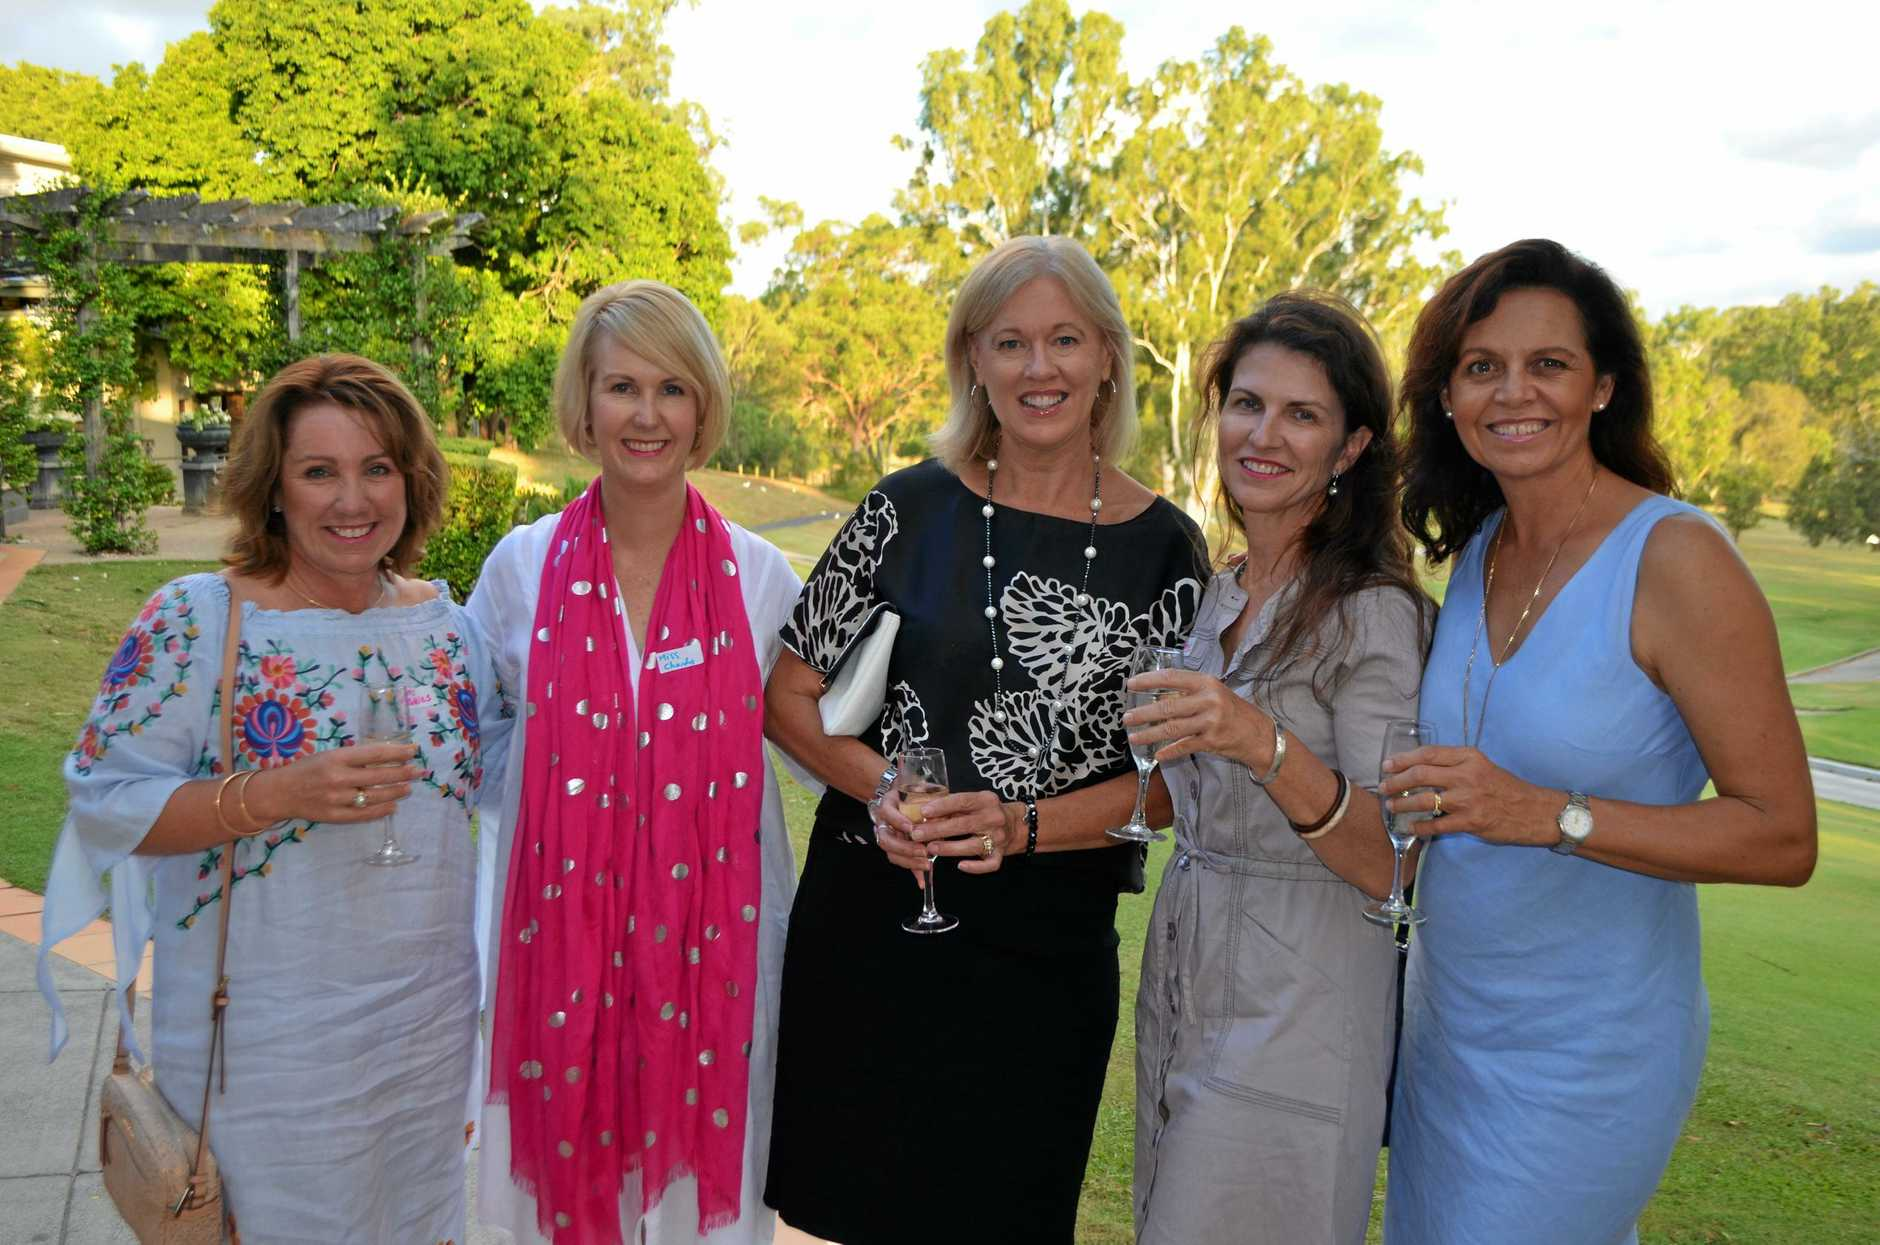 Edwina Pilch, Miss Chardy, Michelle Adcock, Di Sorley and Gina Willmore at Miss Chardy's Girls Night Out.